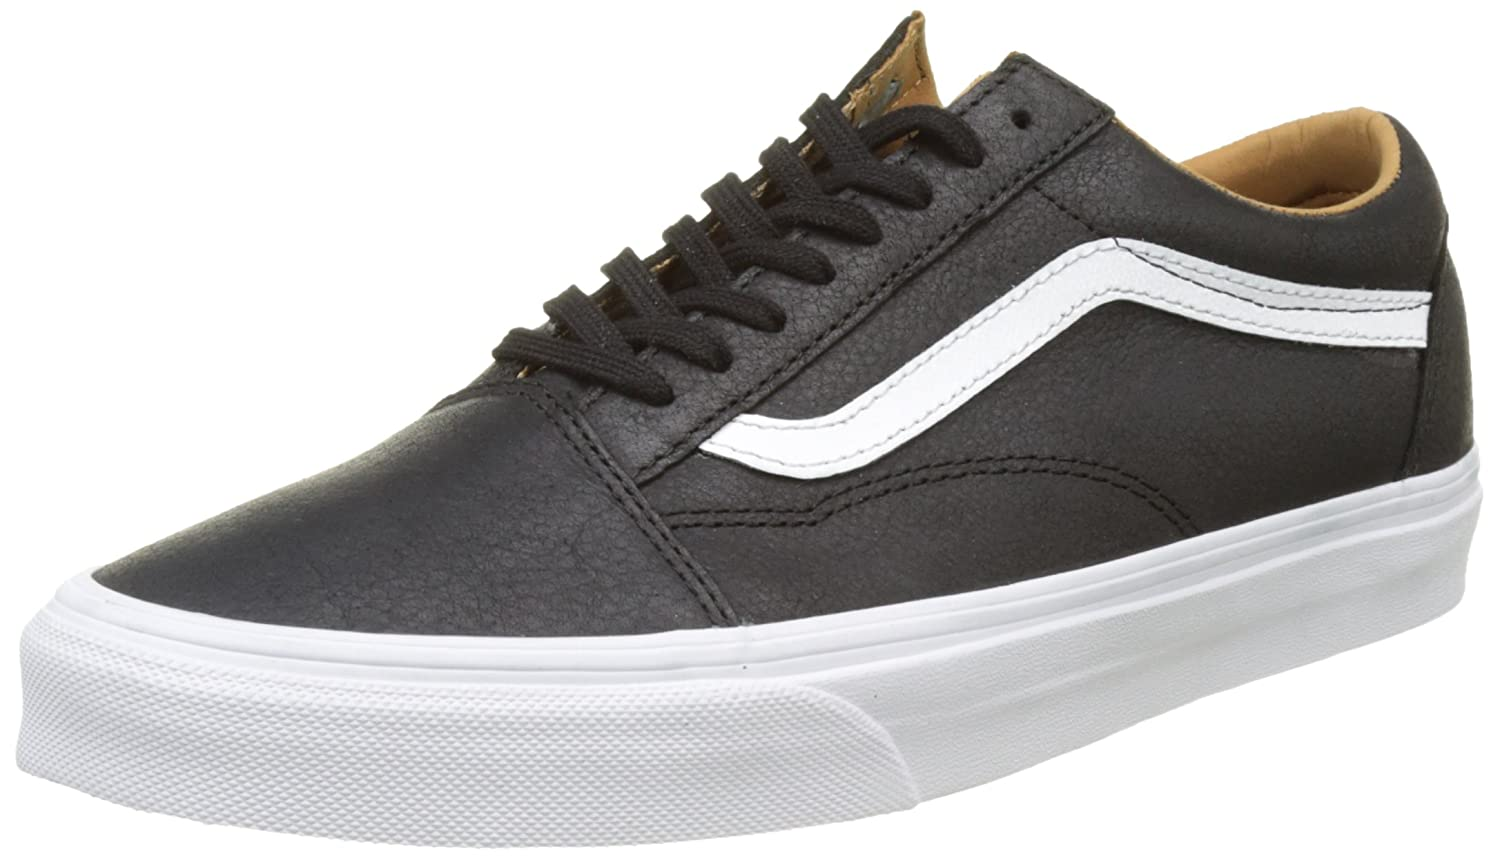 [バンズ] VANS OLD SKOOL B01I2324GY 8.5 Men US / 10 Women US|(Premium Leather) Black/True White